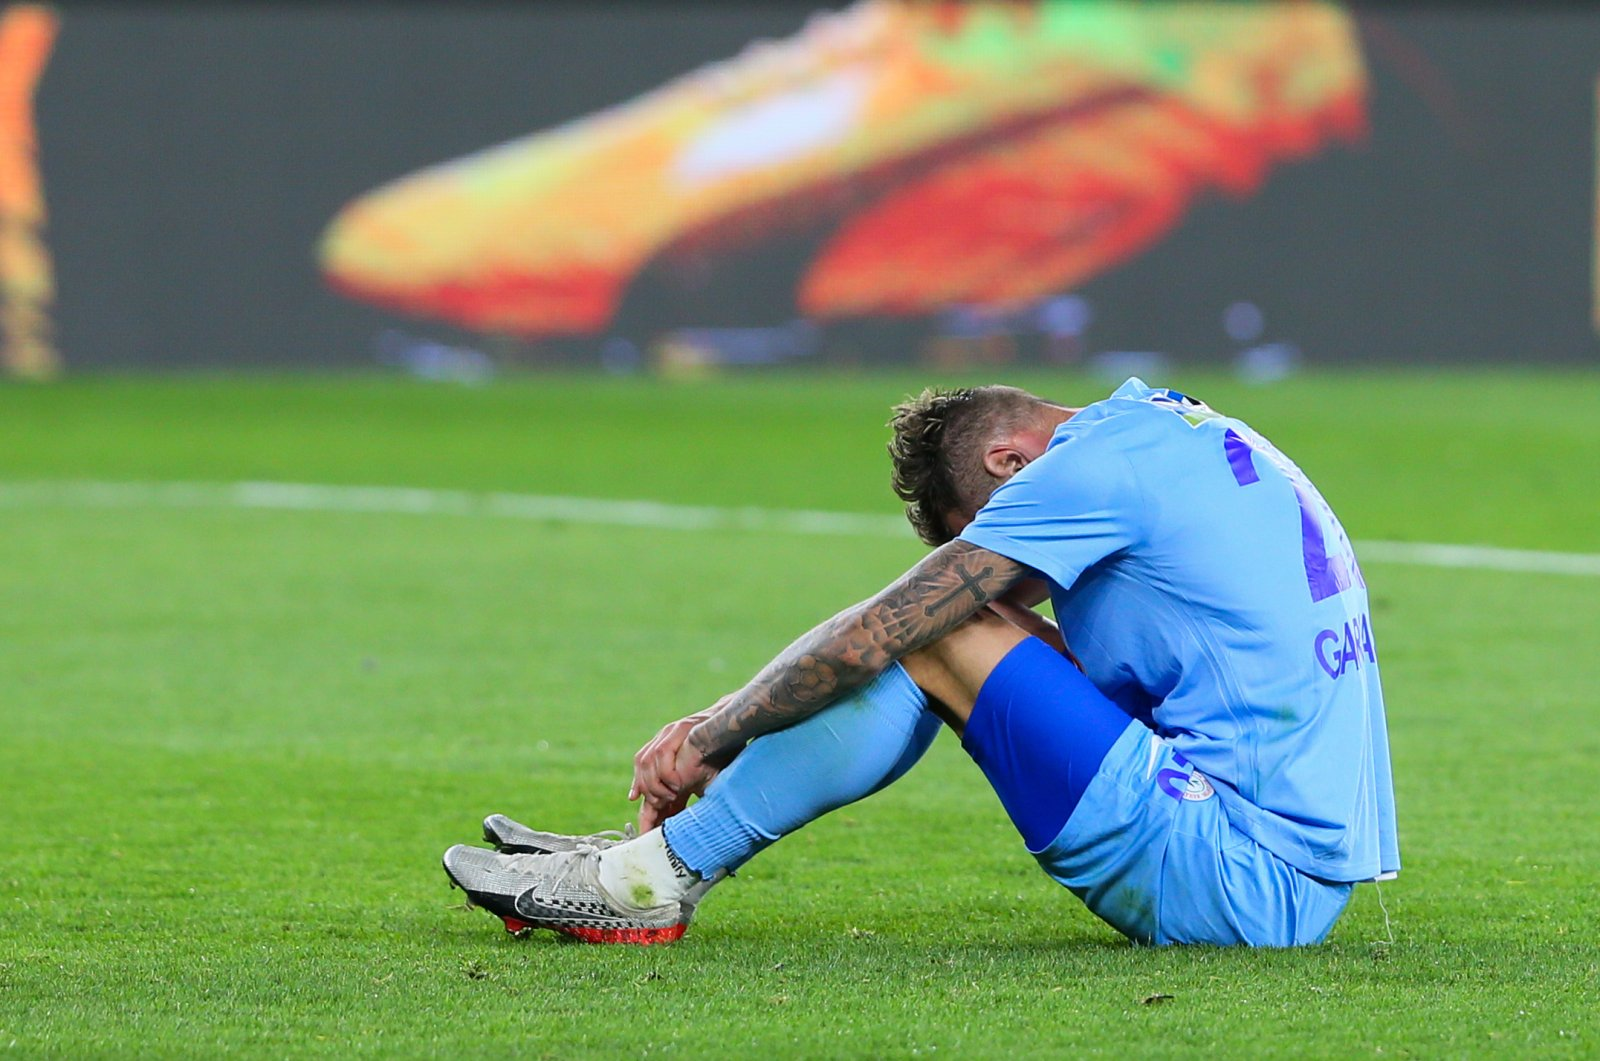 Rizespor's Garmash reacts after missing a shot during a Süper Lig match against Göztepe in İzmir, Tuesday, March 17, 2020. (AA Photo)